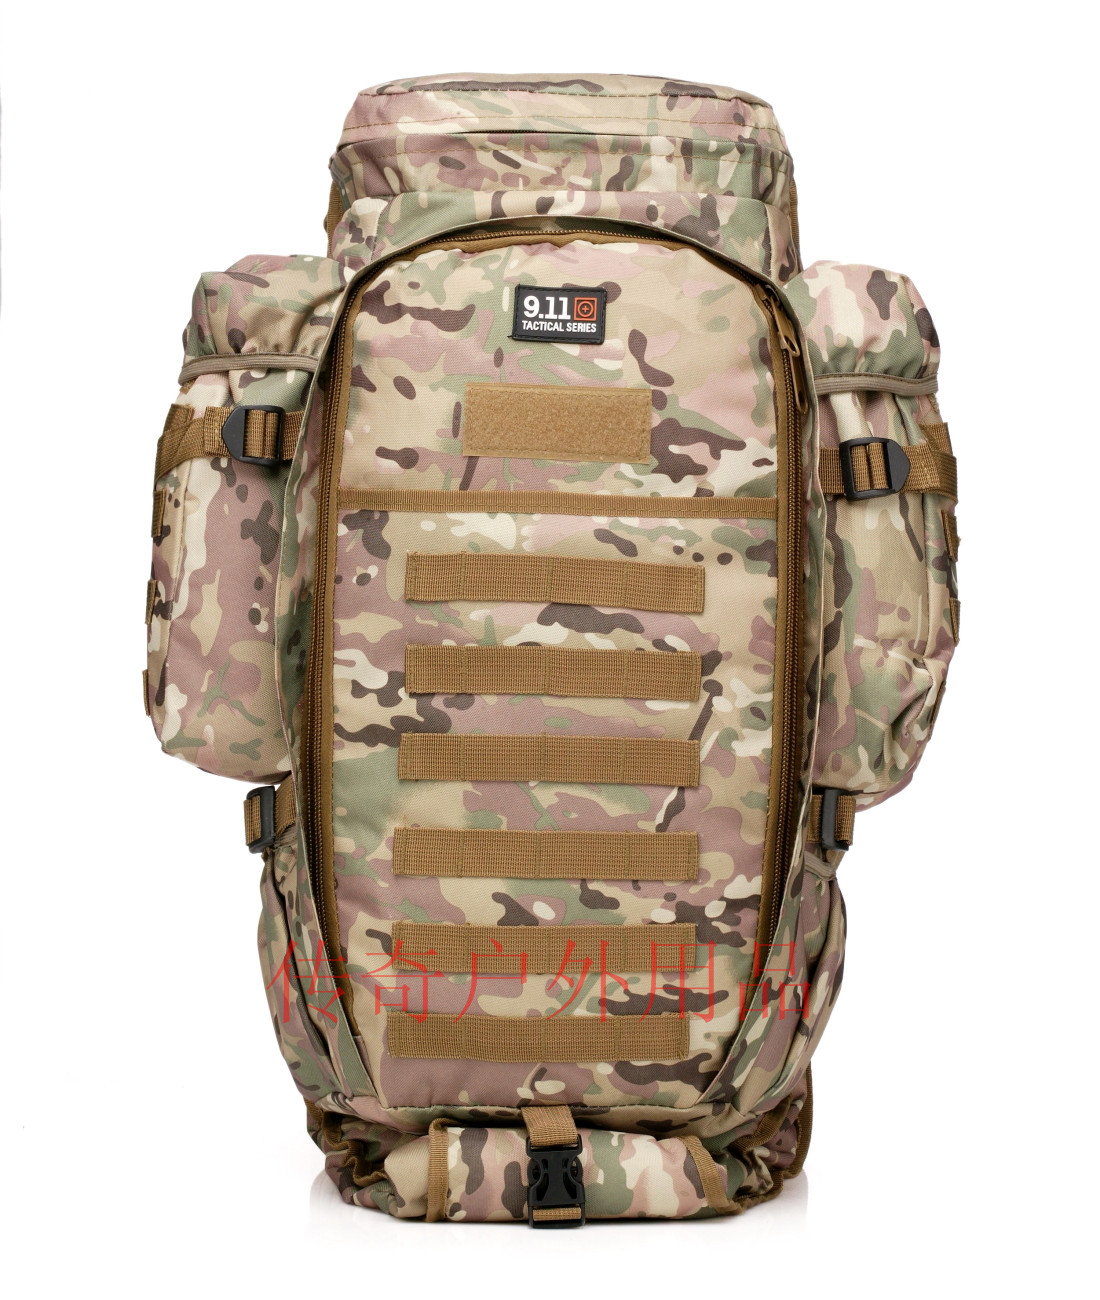 Tactical Hiking Backpack - Crazy Backpacks